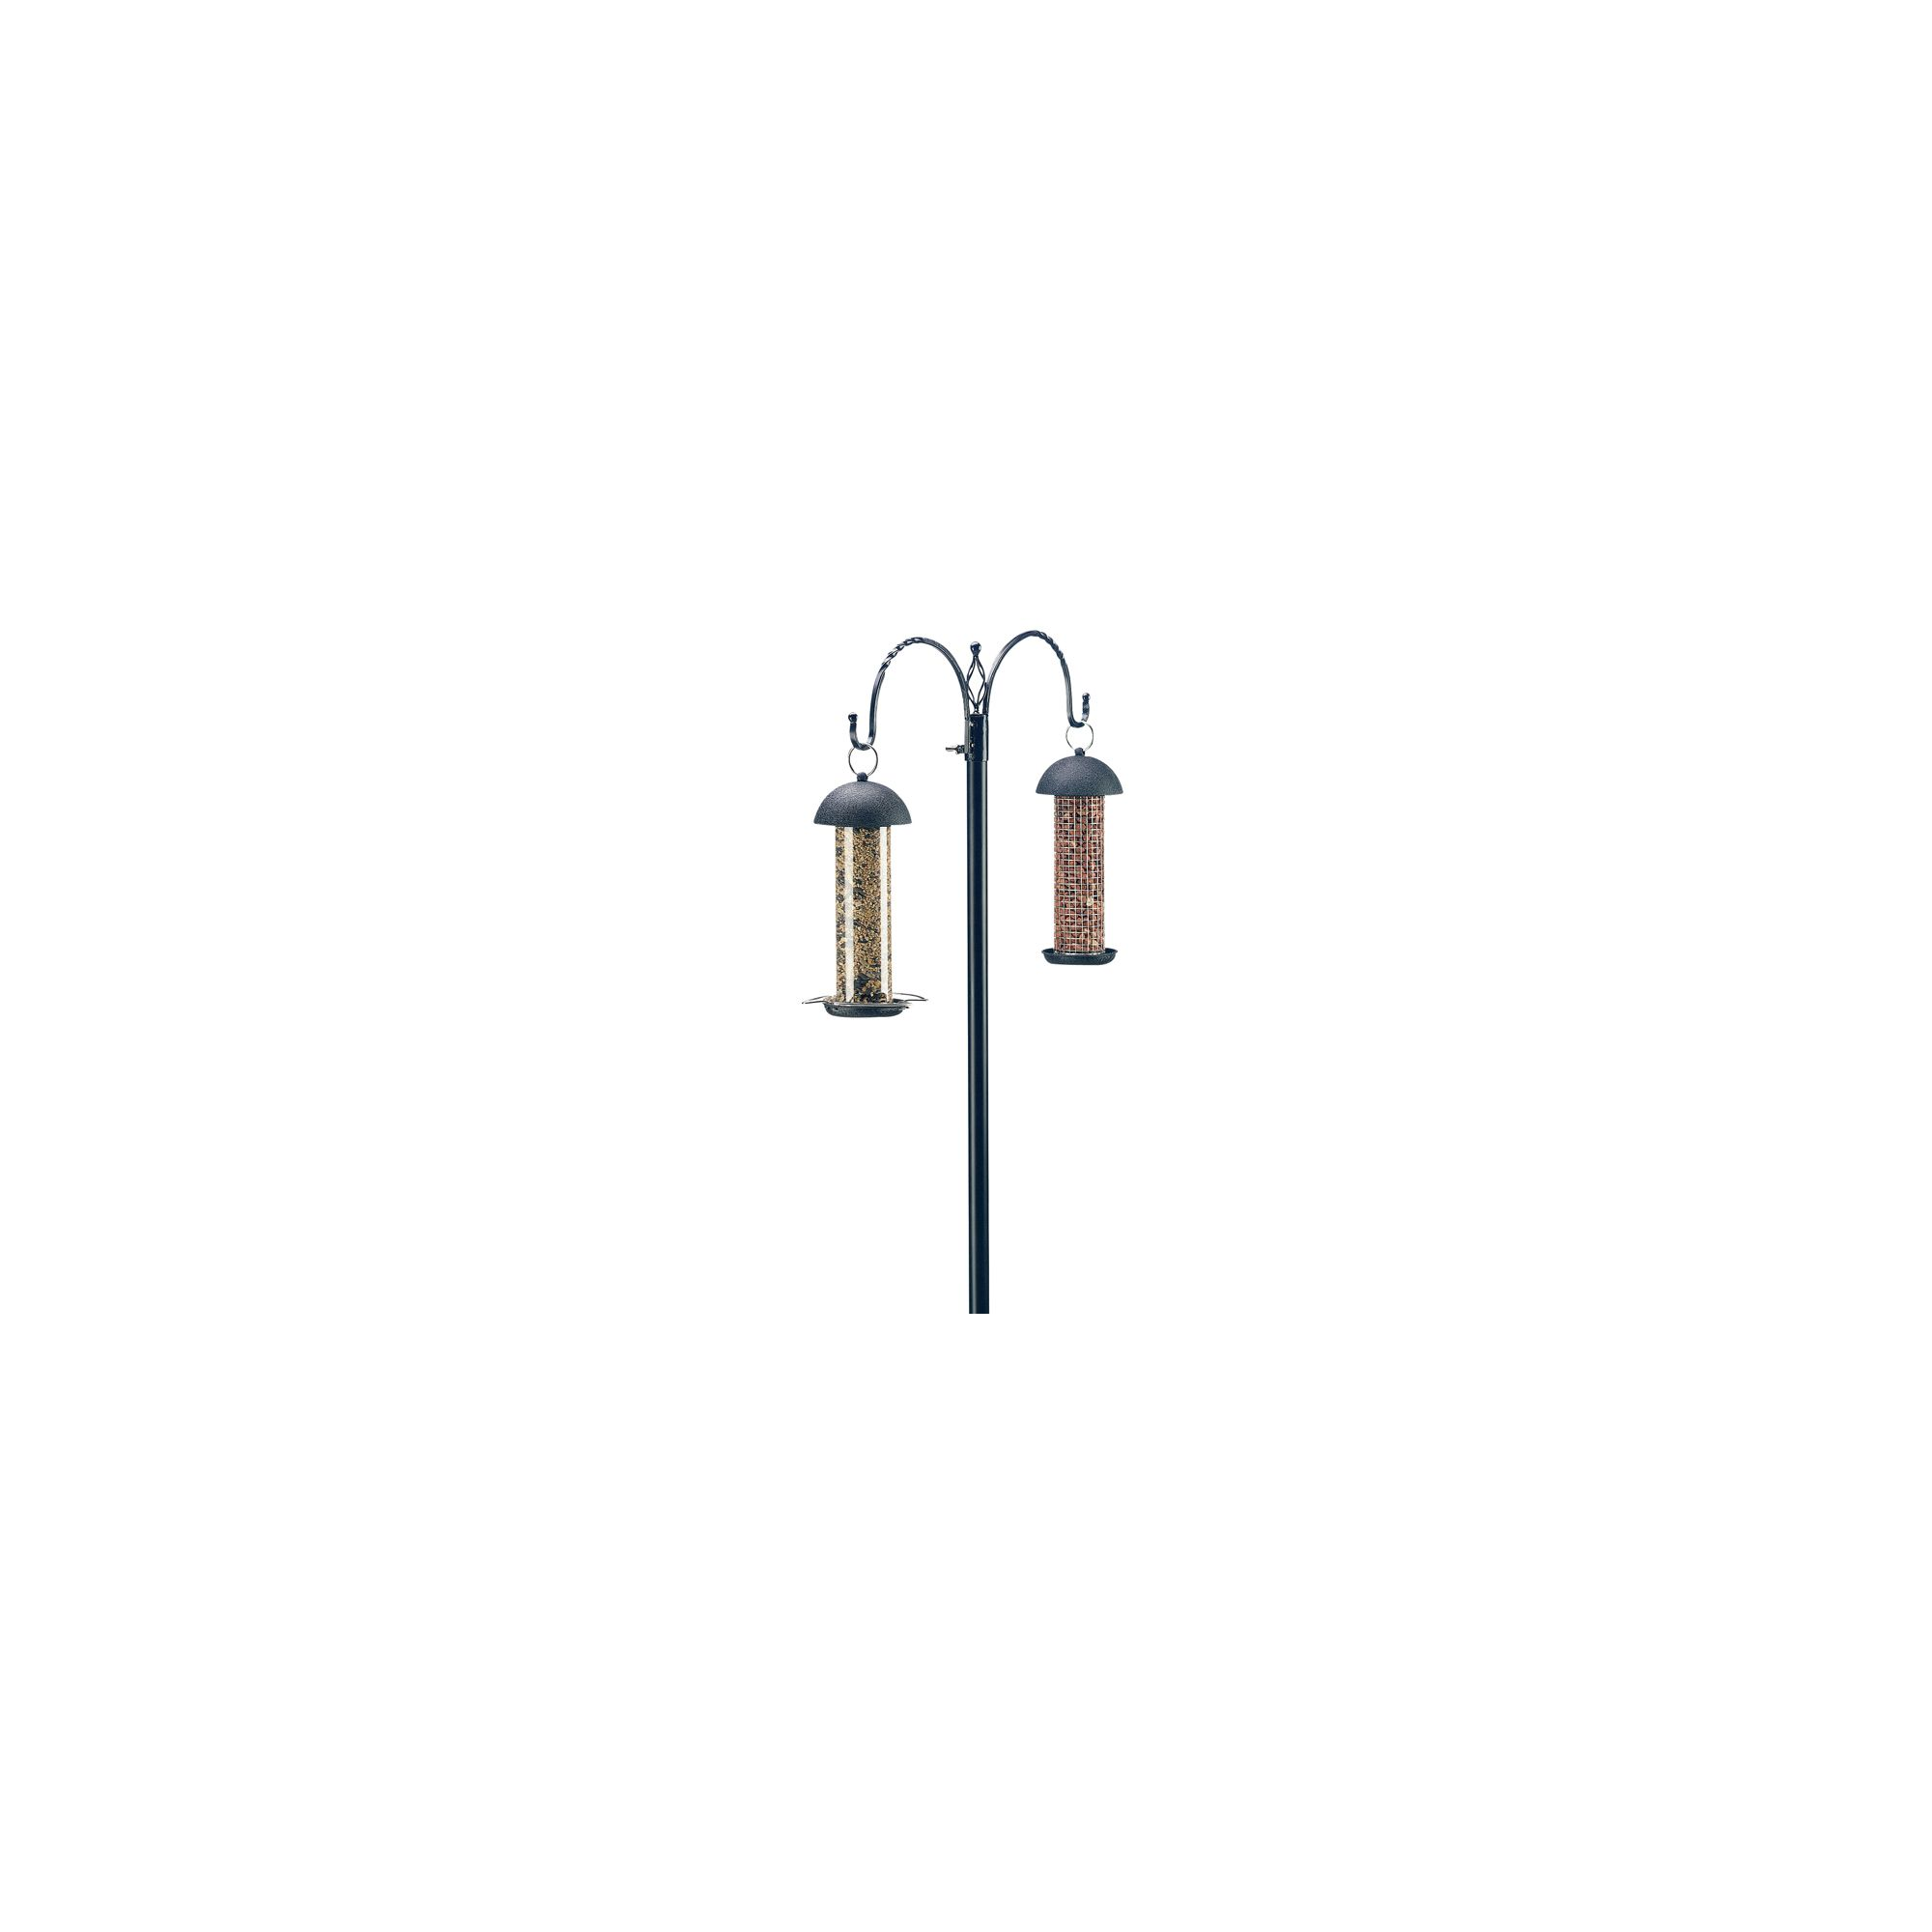 Gardman A01187Bc Twin Feeder Hook Stn+Feeder